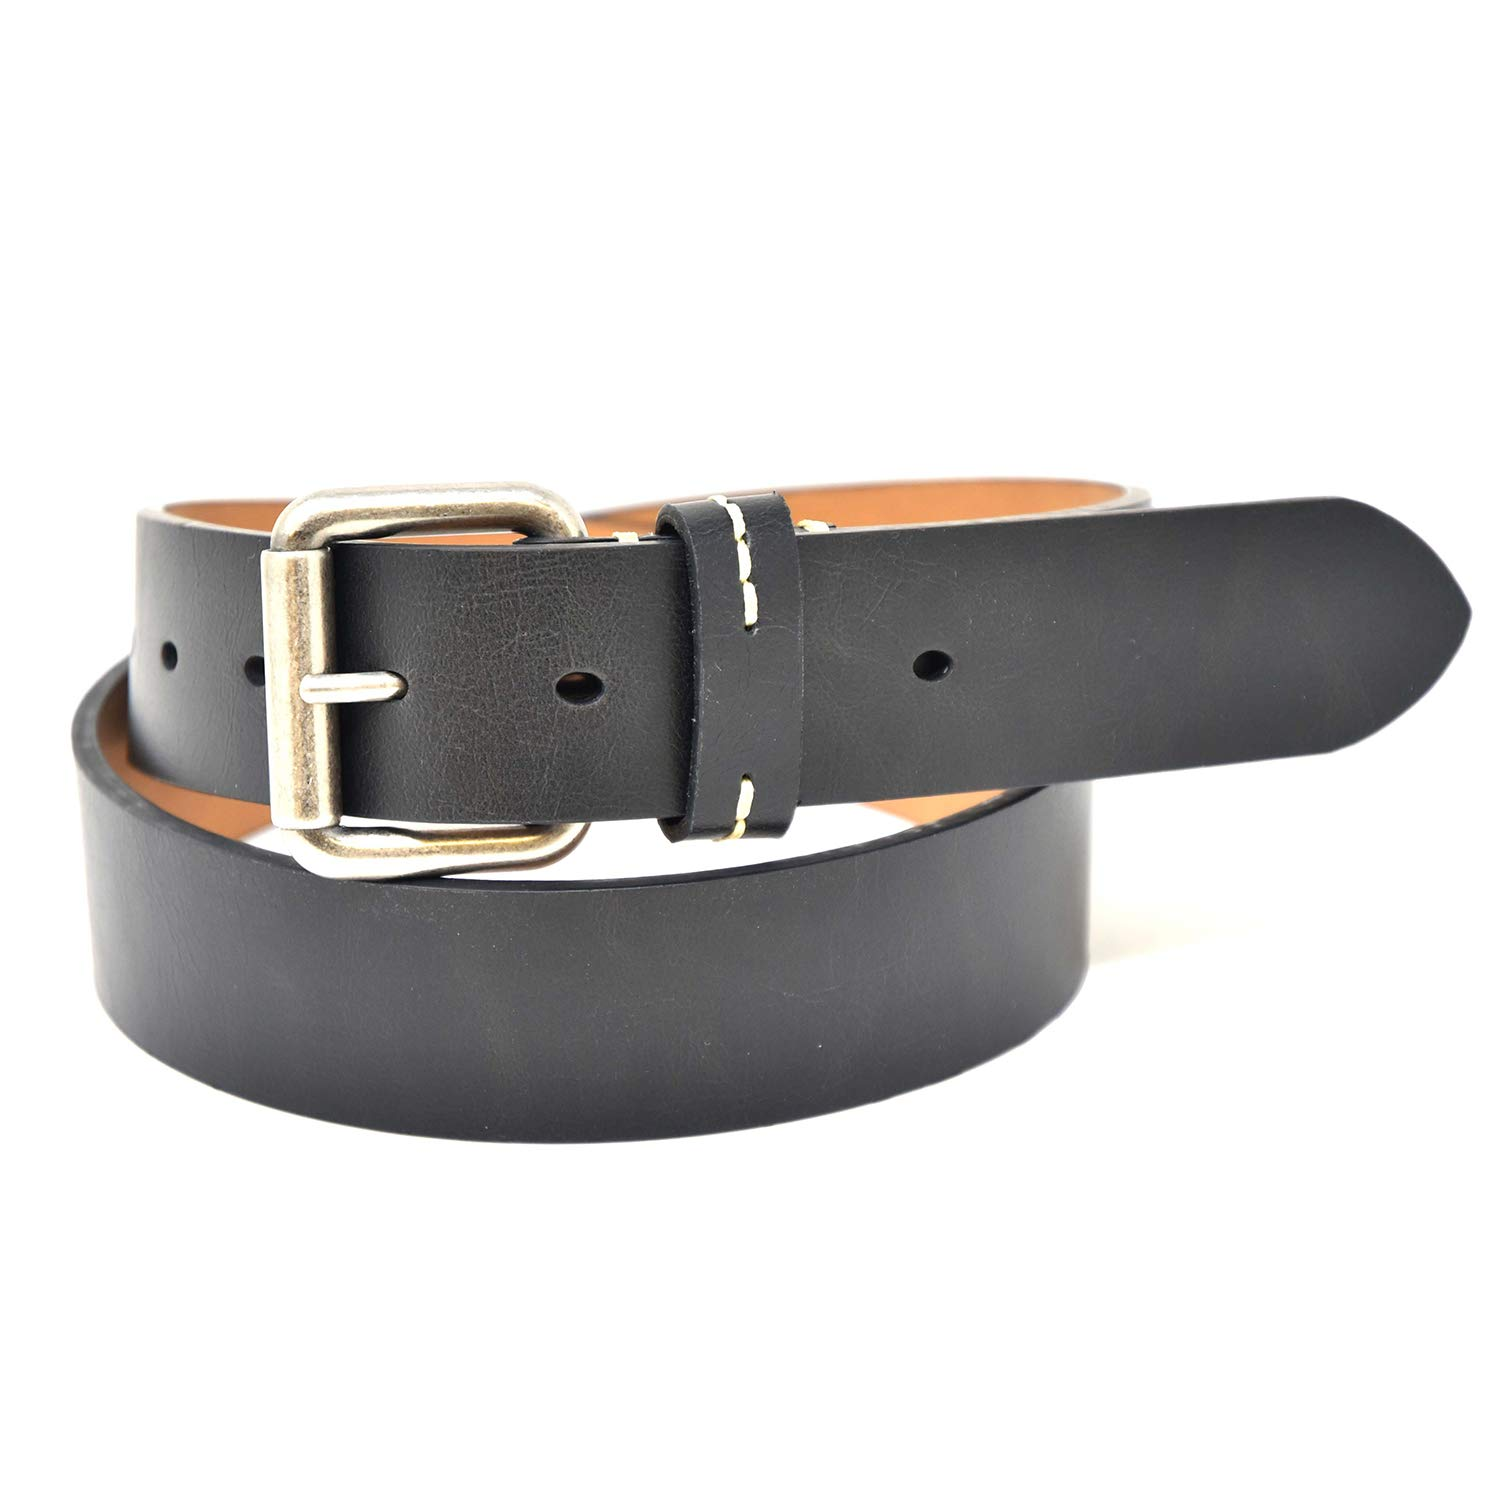 Brown/and Tan Antique Nickel Roller Buckle 1.5 Wide/7 Hole Jean Belt Black NYBC Mens Belt Made in the USA